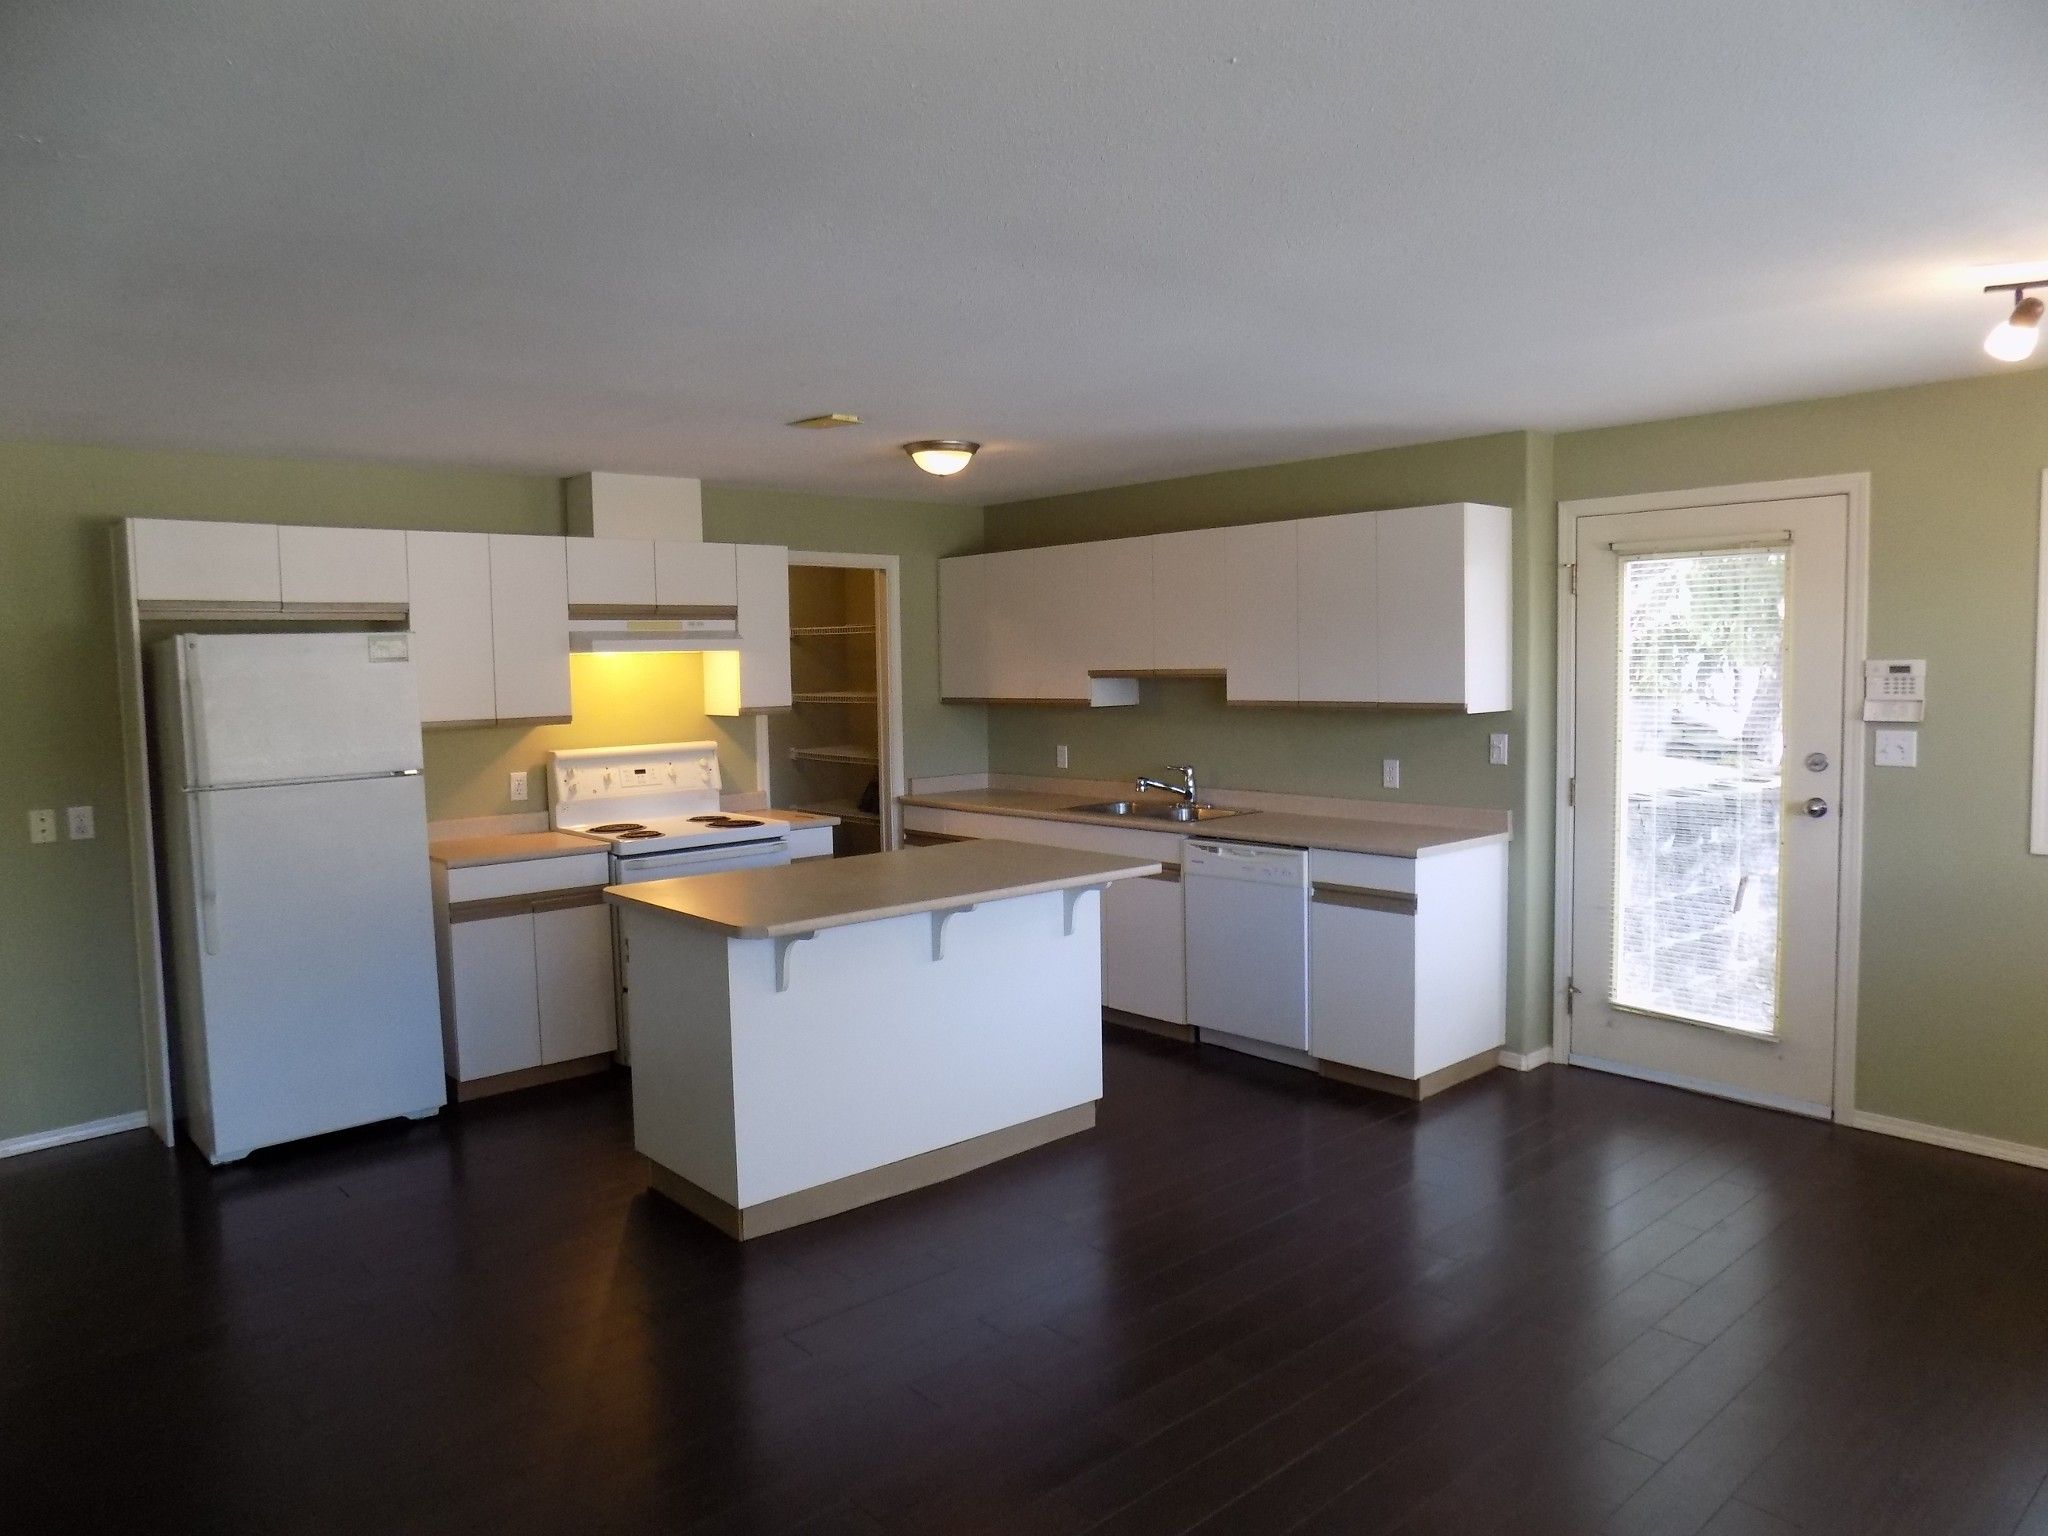 Main Photo: BSMT 36001 Empress Drive in Abbotsford: Abbotsford East Condo for rent